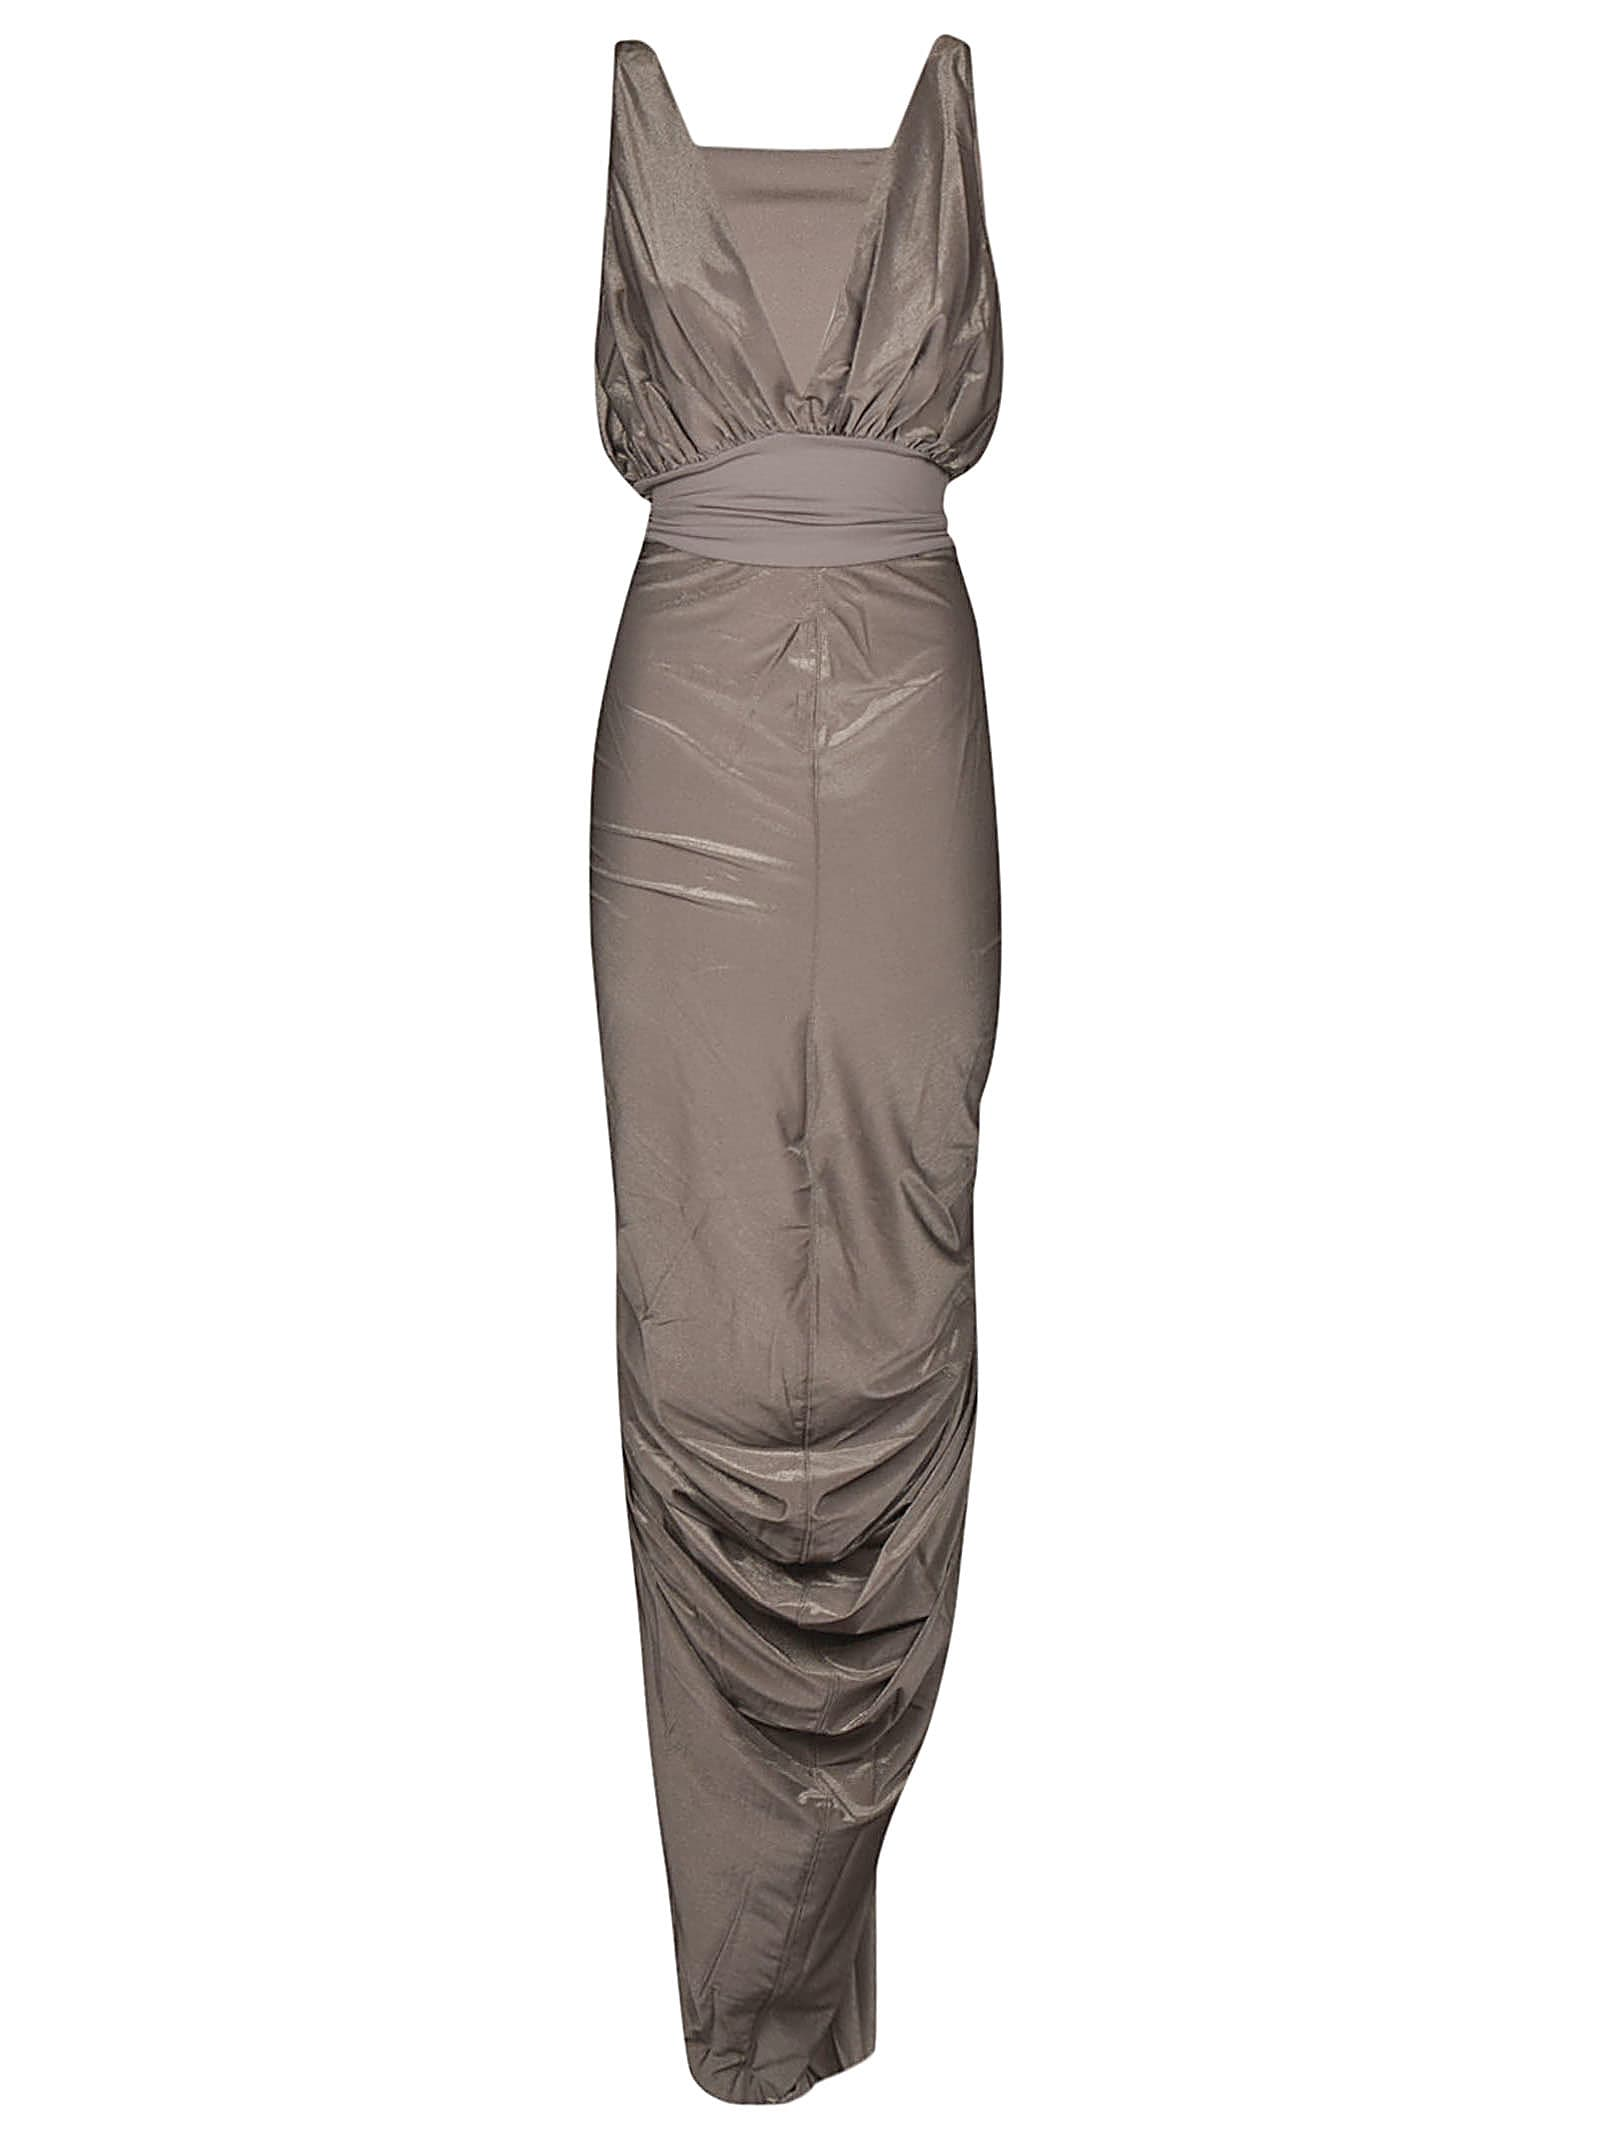 Buy Rick Owens Lilies Sleeveless Gown Dress online, shop Rick Owens Lilies with free shipping